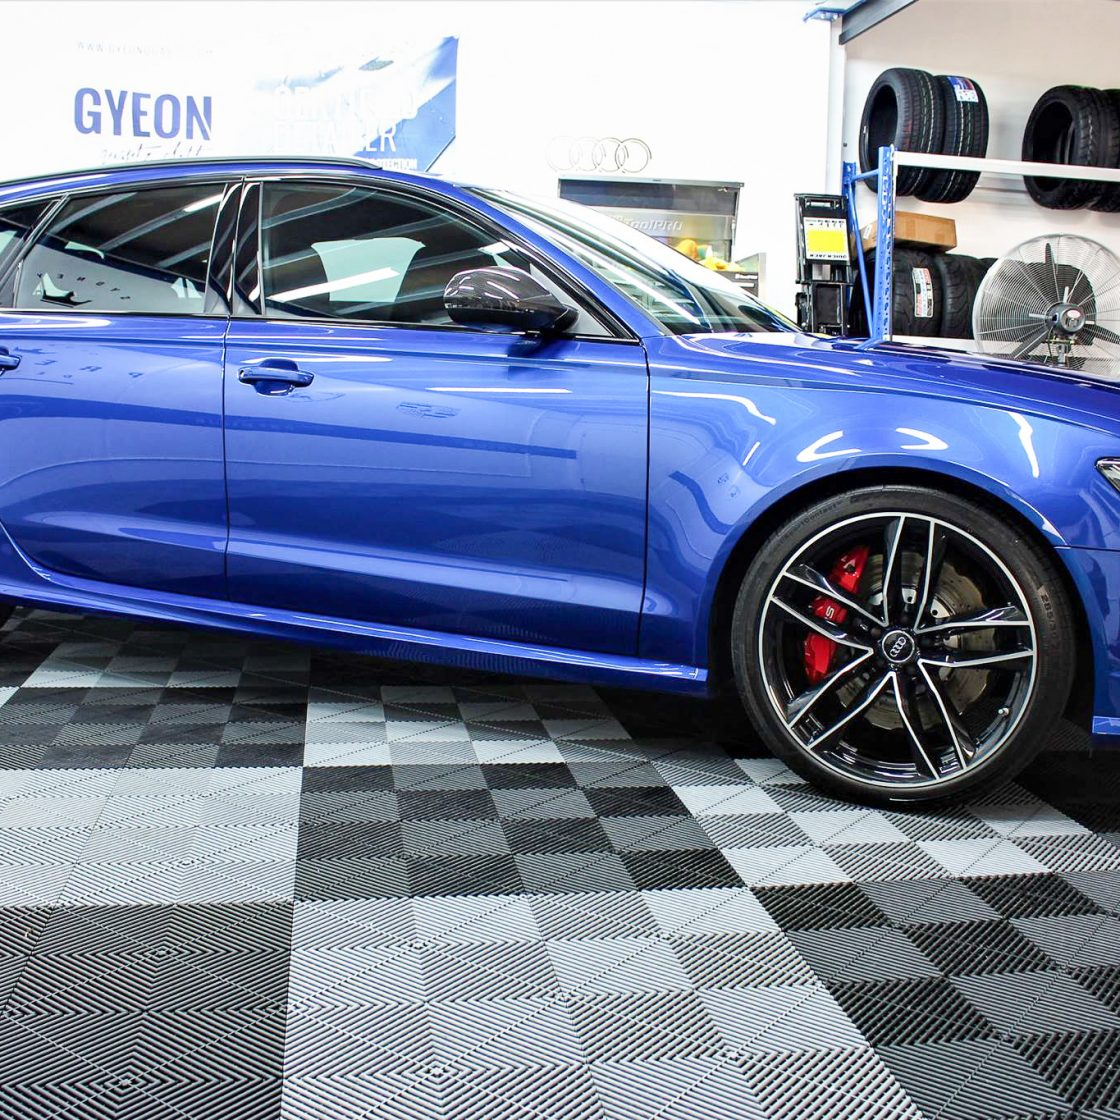 [object object] Sydney Premium Detailing Protection Portfolio Audi RS6 Blue GYEON quartz SPD 1120x1120